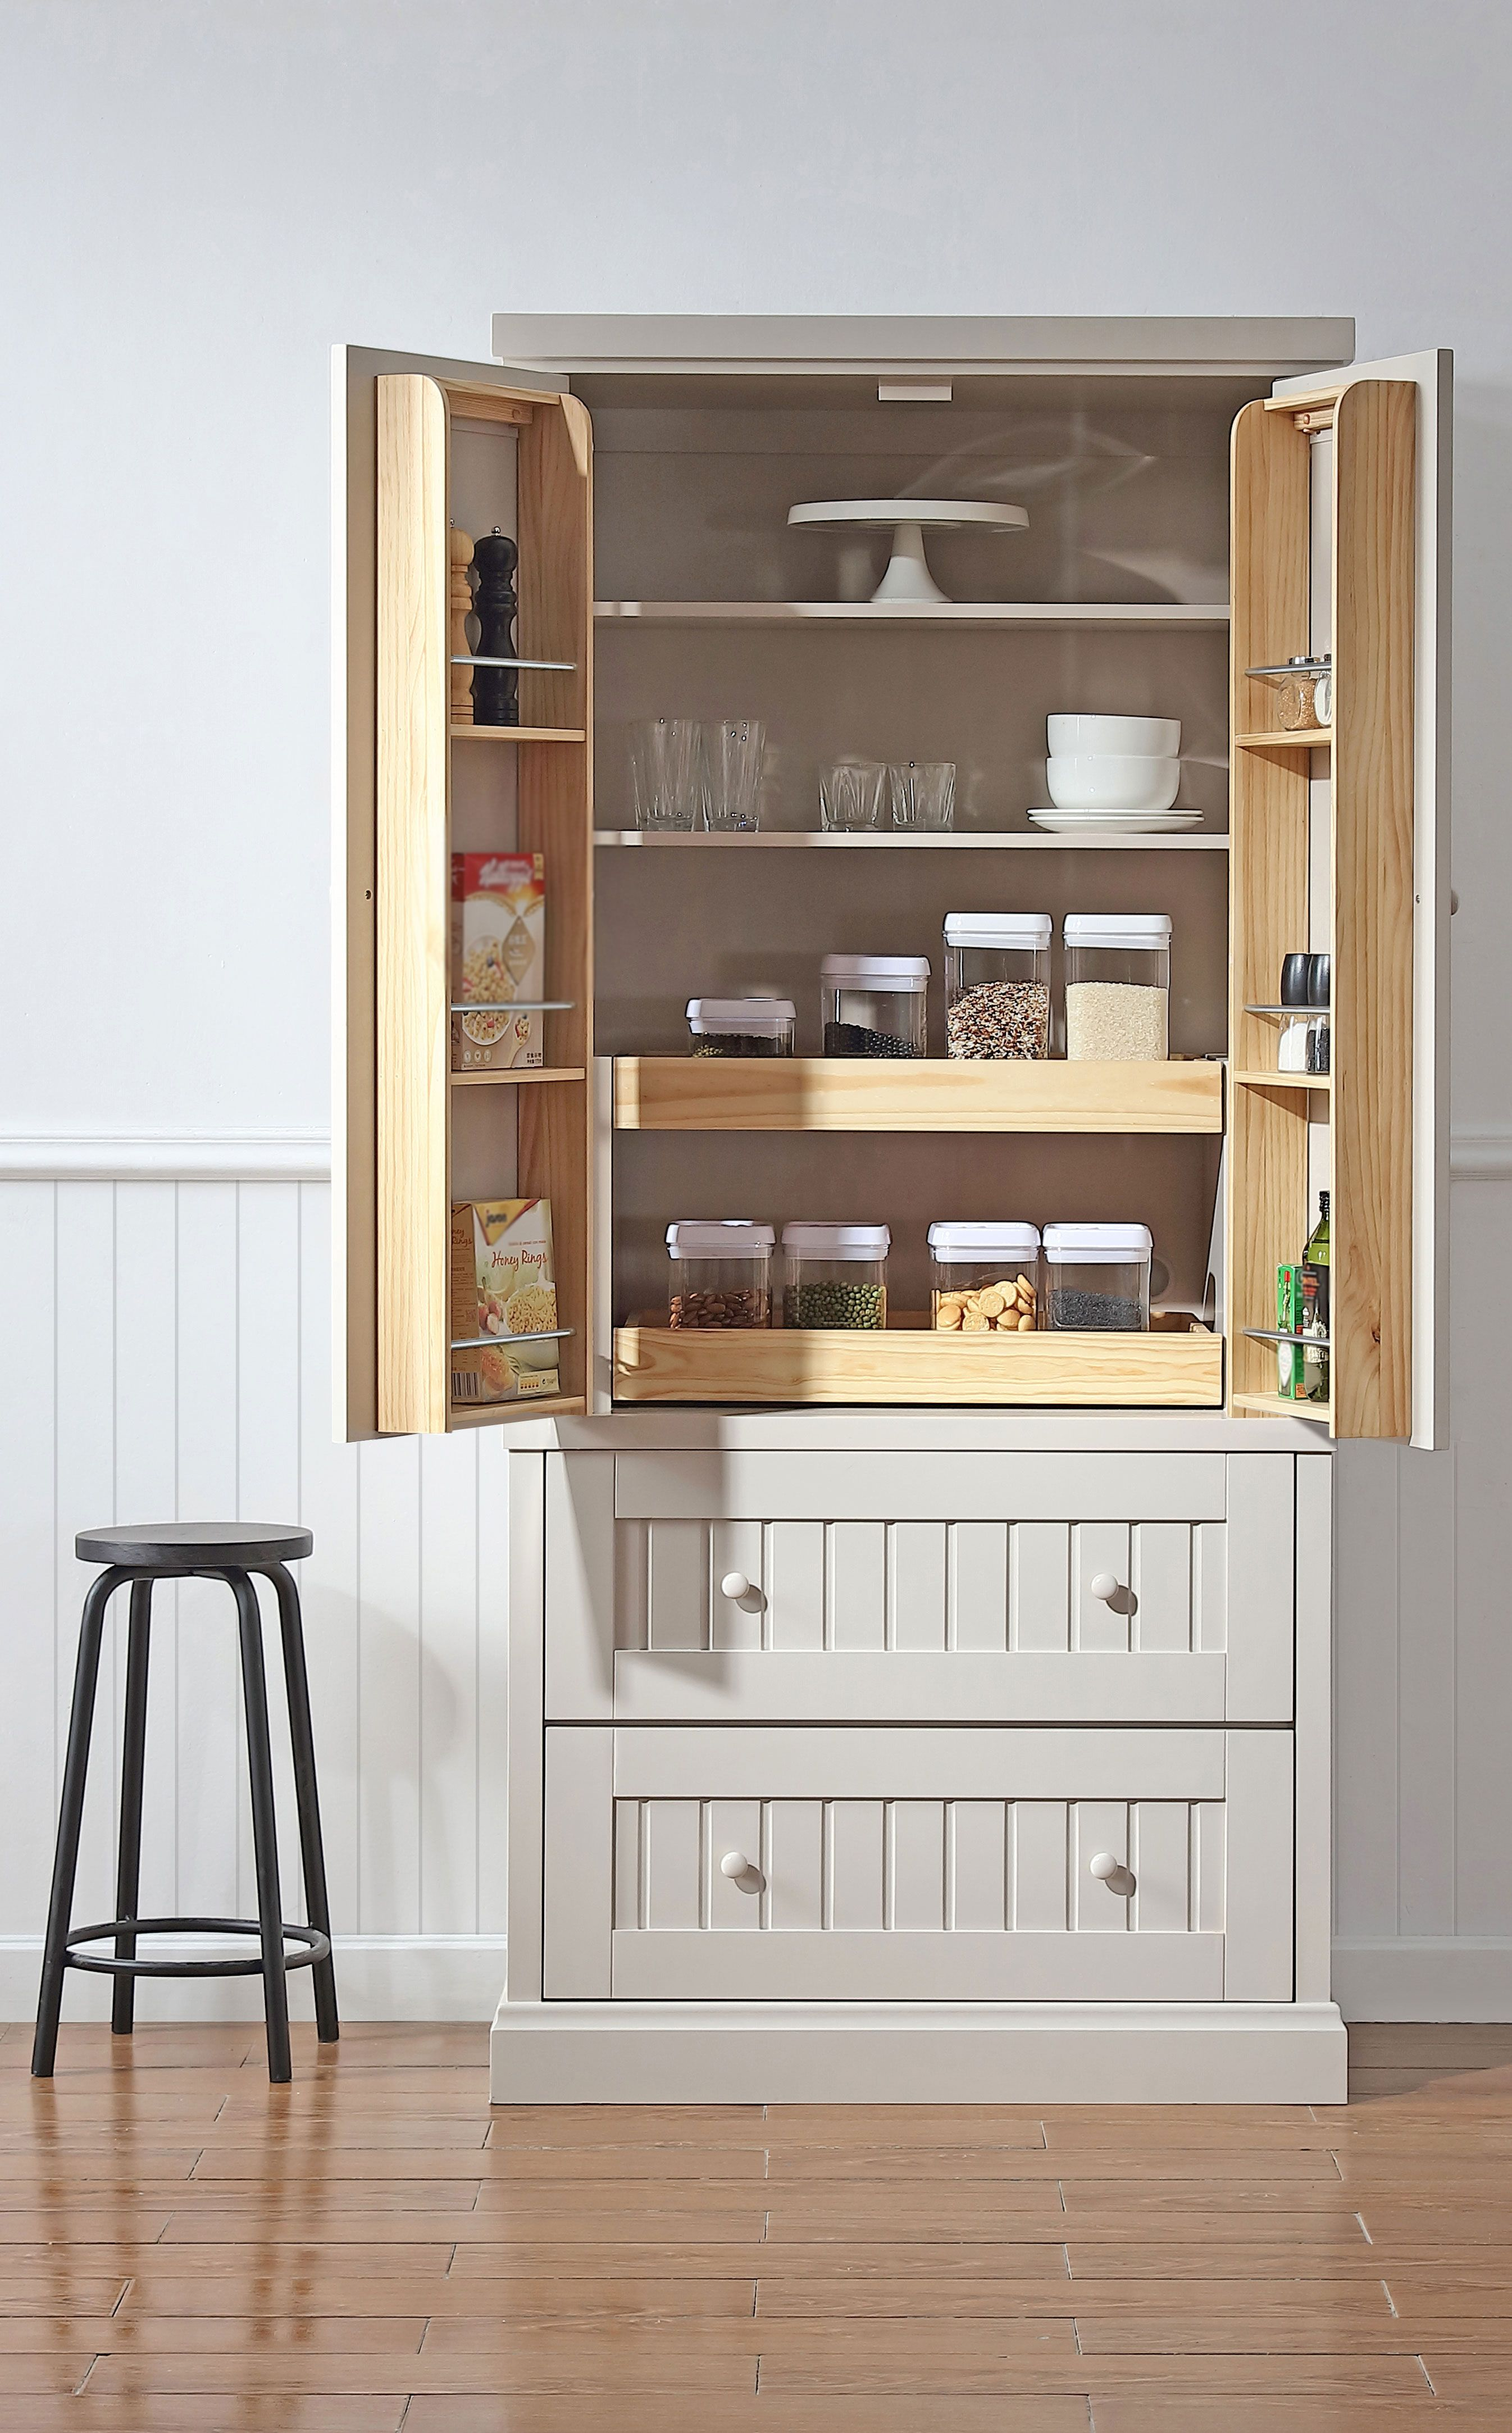 organizing cabinets counterps kitchen cupboards stewart pinterest counterp without drawers how youtube to video and your martha organize upper